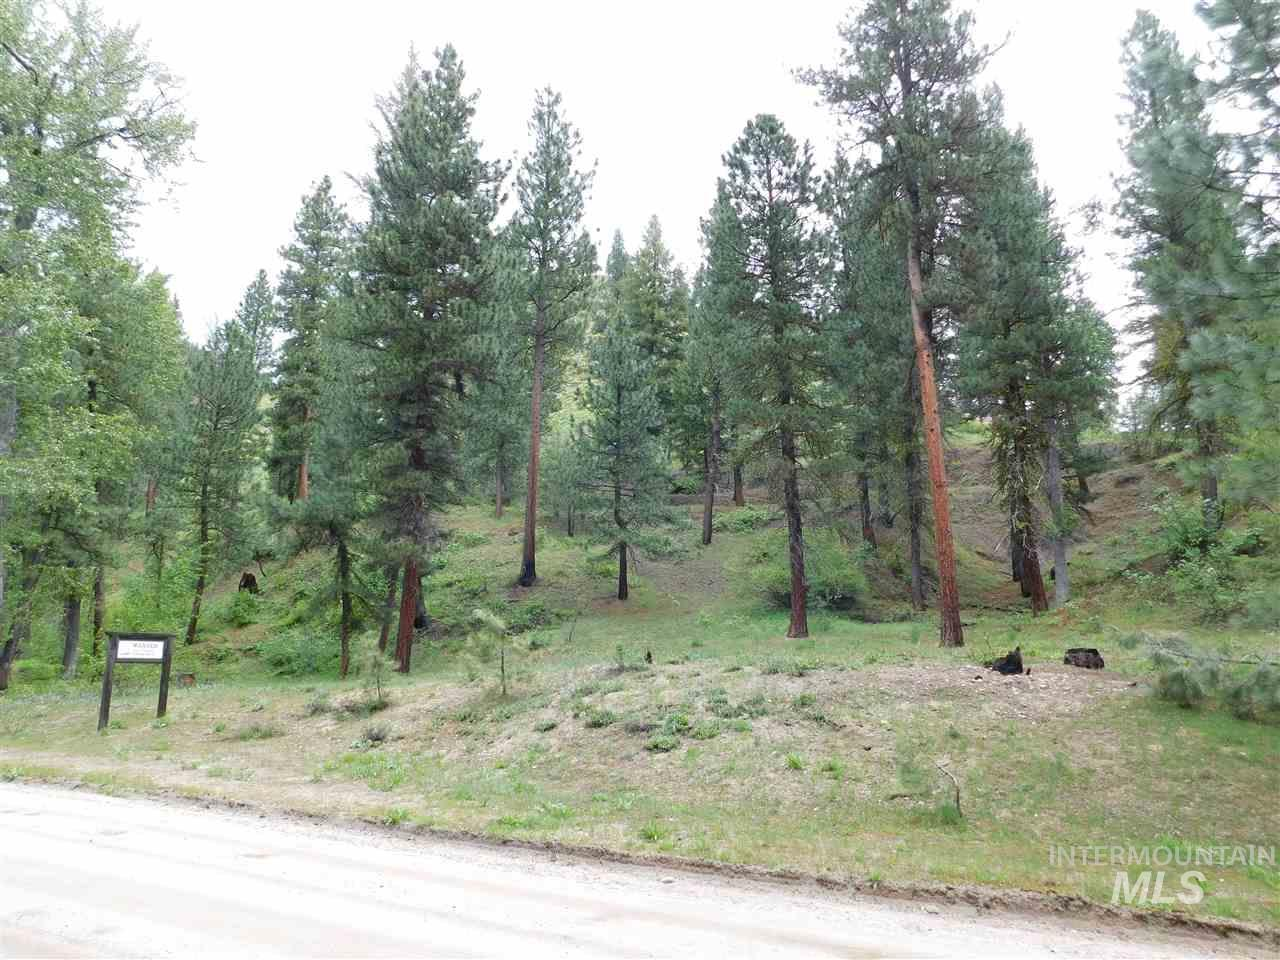 TAX 24 LESS TAX 26 SEC 9 T3N R10E, Featherville, Idaho 83647, Land For Sale, Price $150,000, 98731006